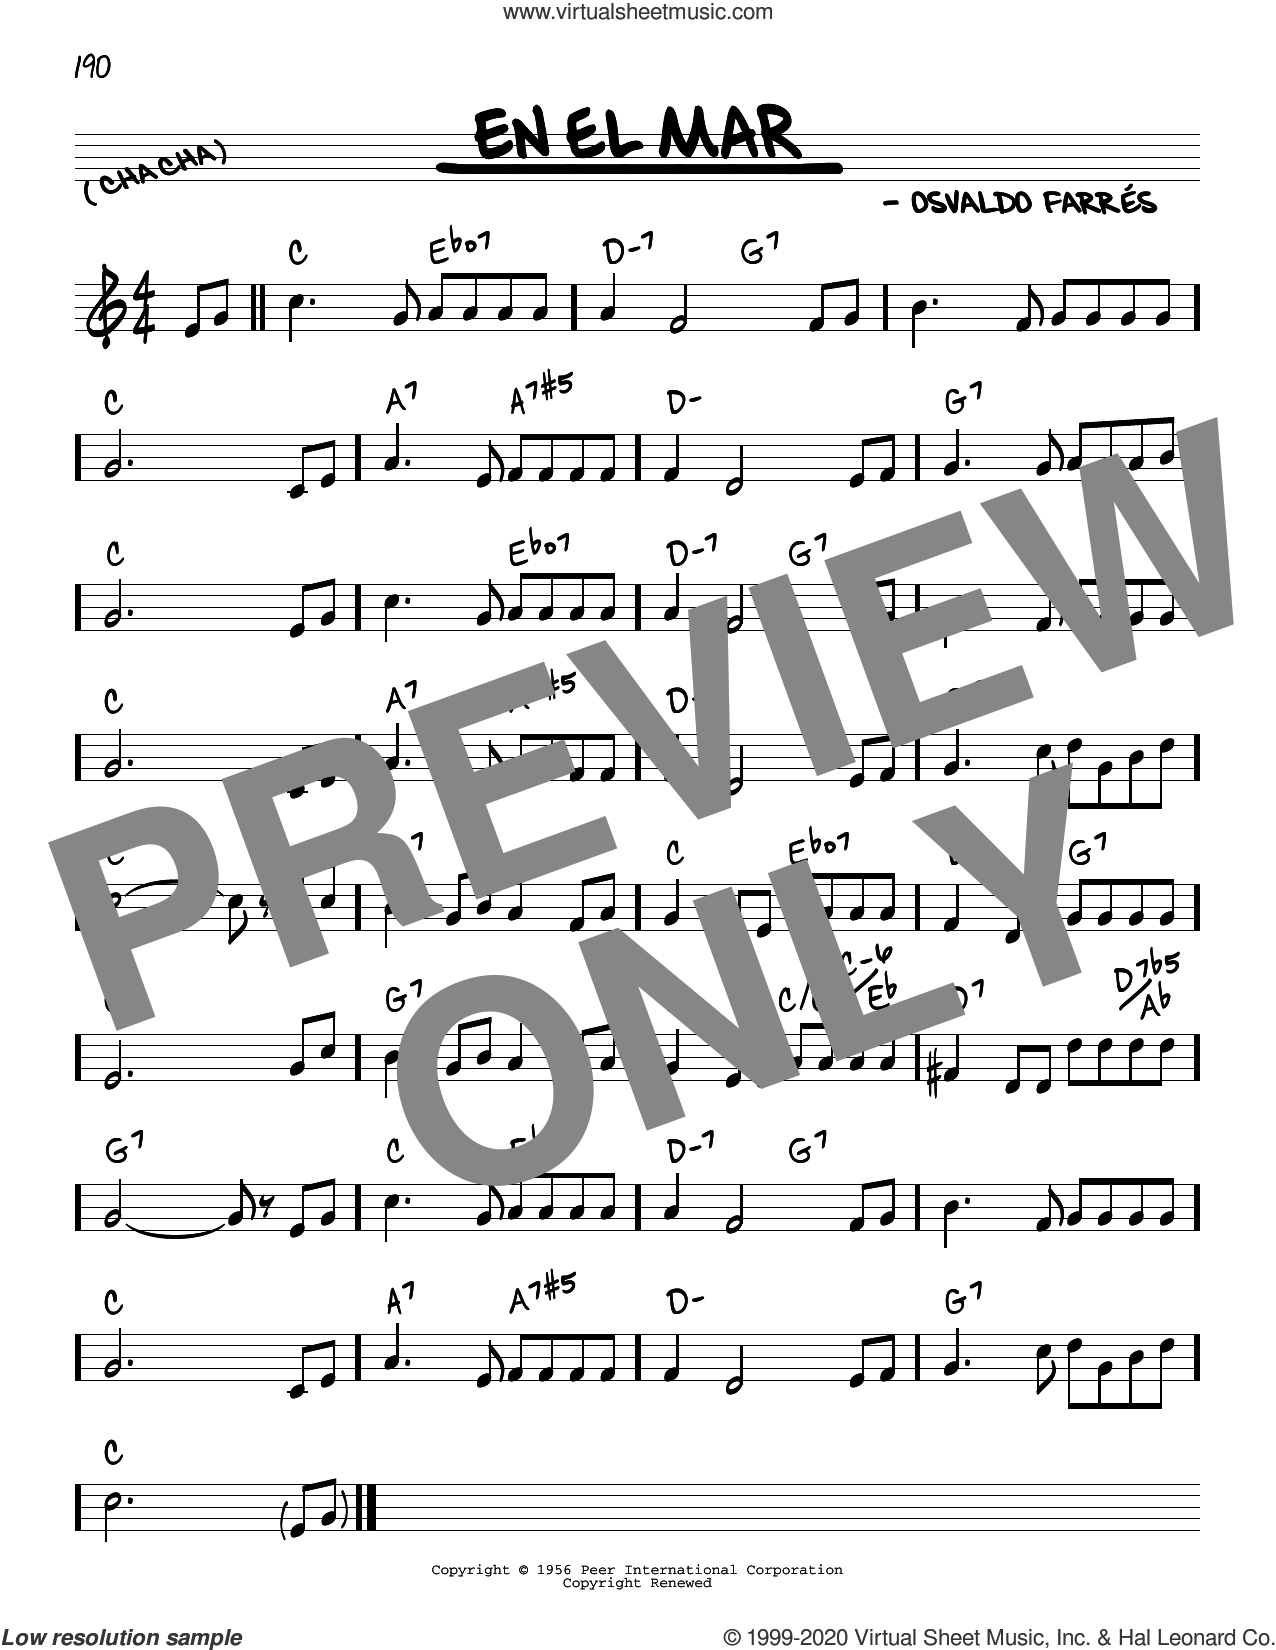 En El Mar sheet music for voice and other instruments (real book) by Osvaldo Farres, intermediate skill level